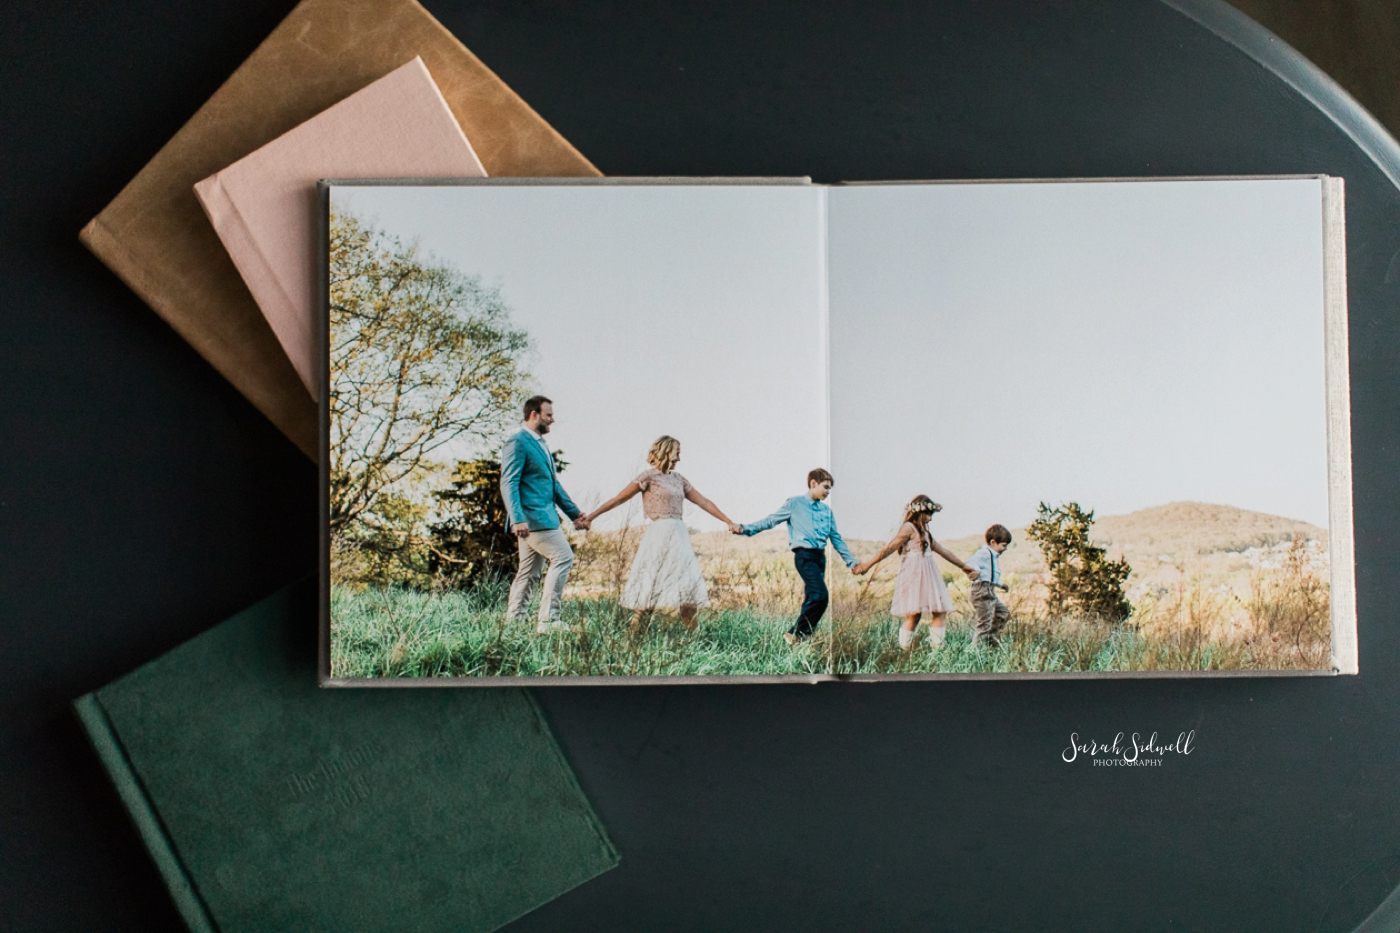 Collecting Family Photo Albums